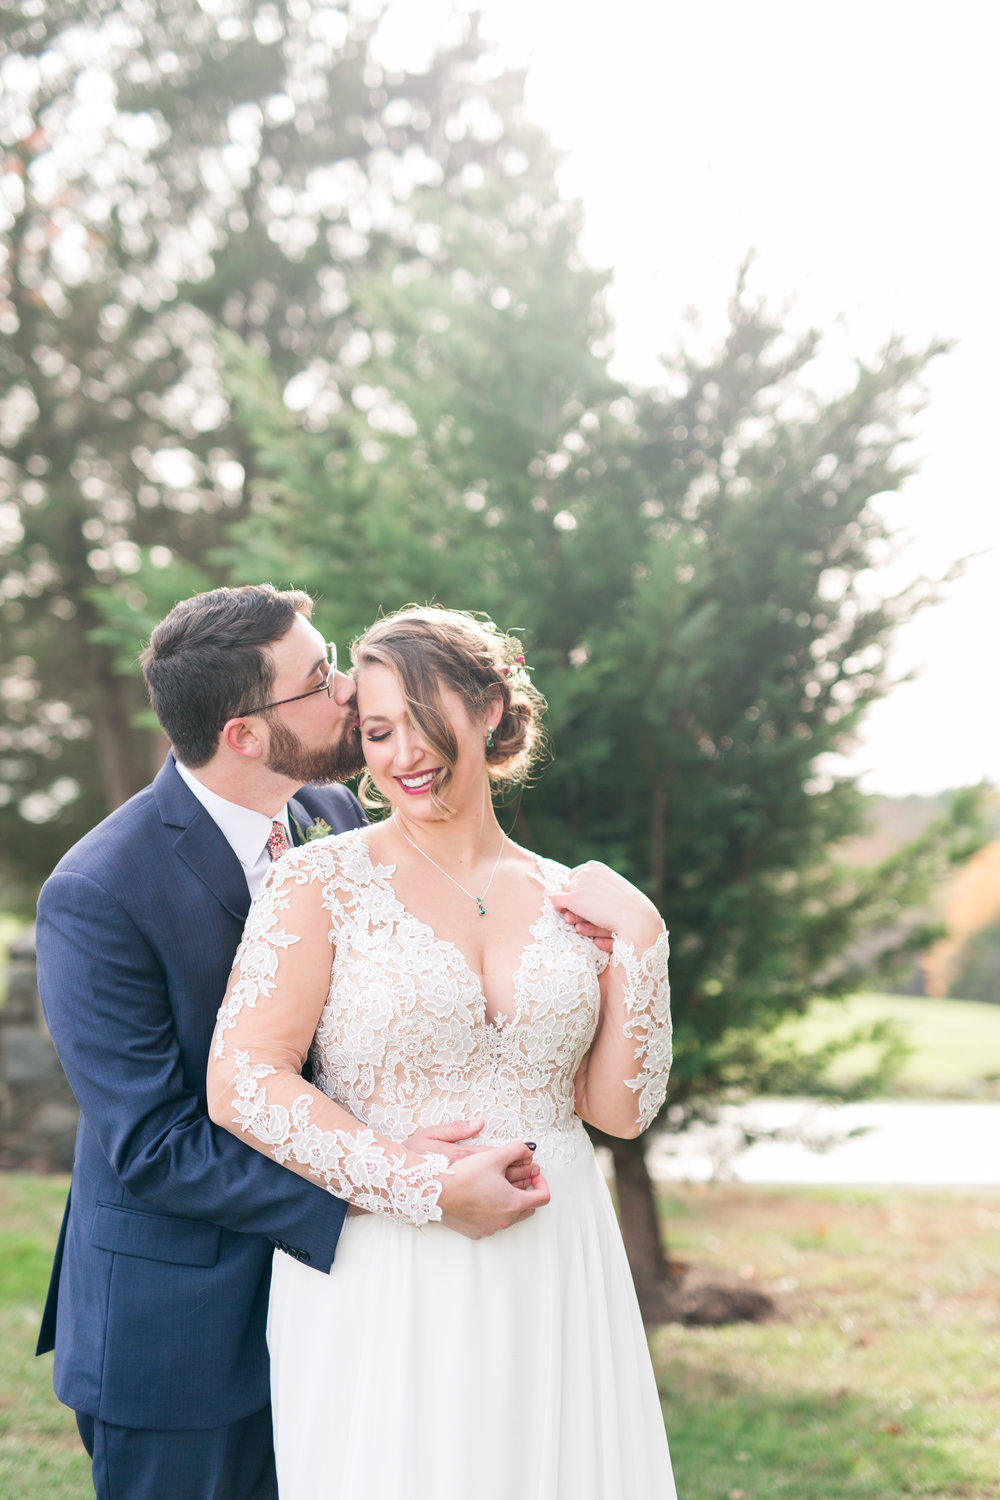 Lynchburg Virginia Wedding Photographer || Central Virginia Wedding Photos || The Trivium Estate Wedding || Ashley Eiban Photography || www.ashleyeiban.com